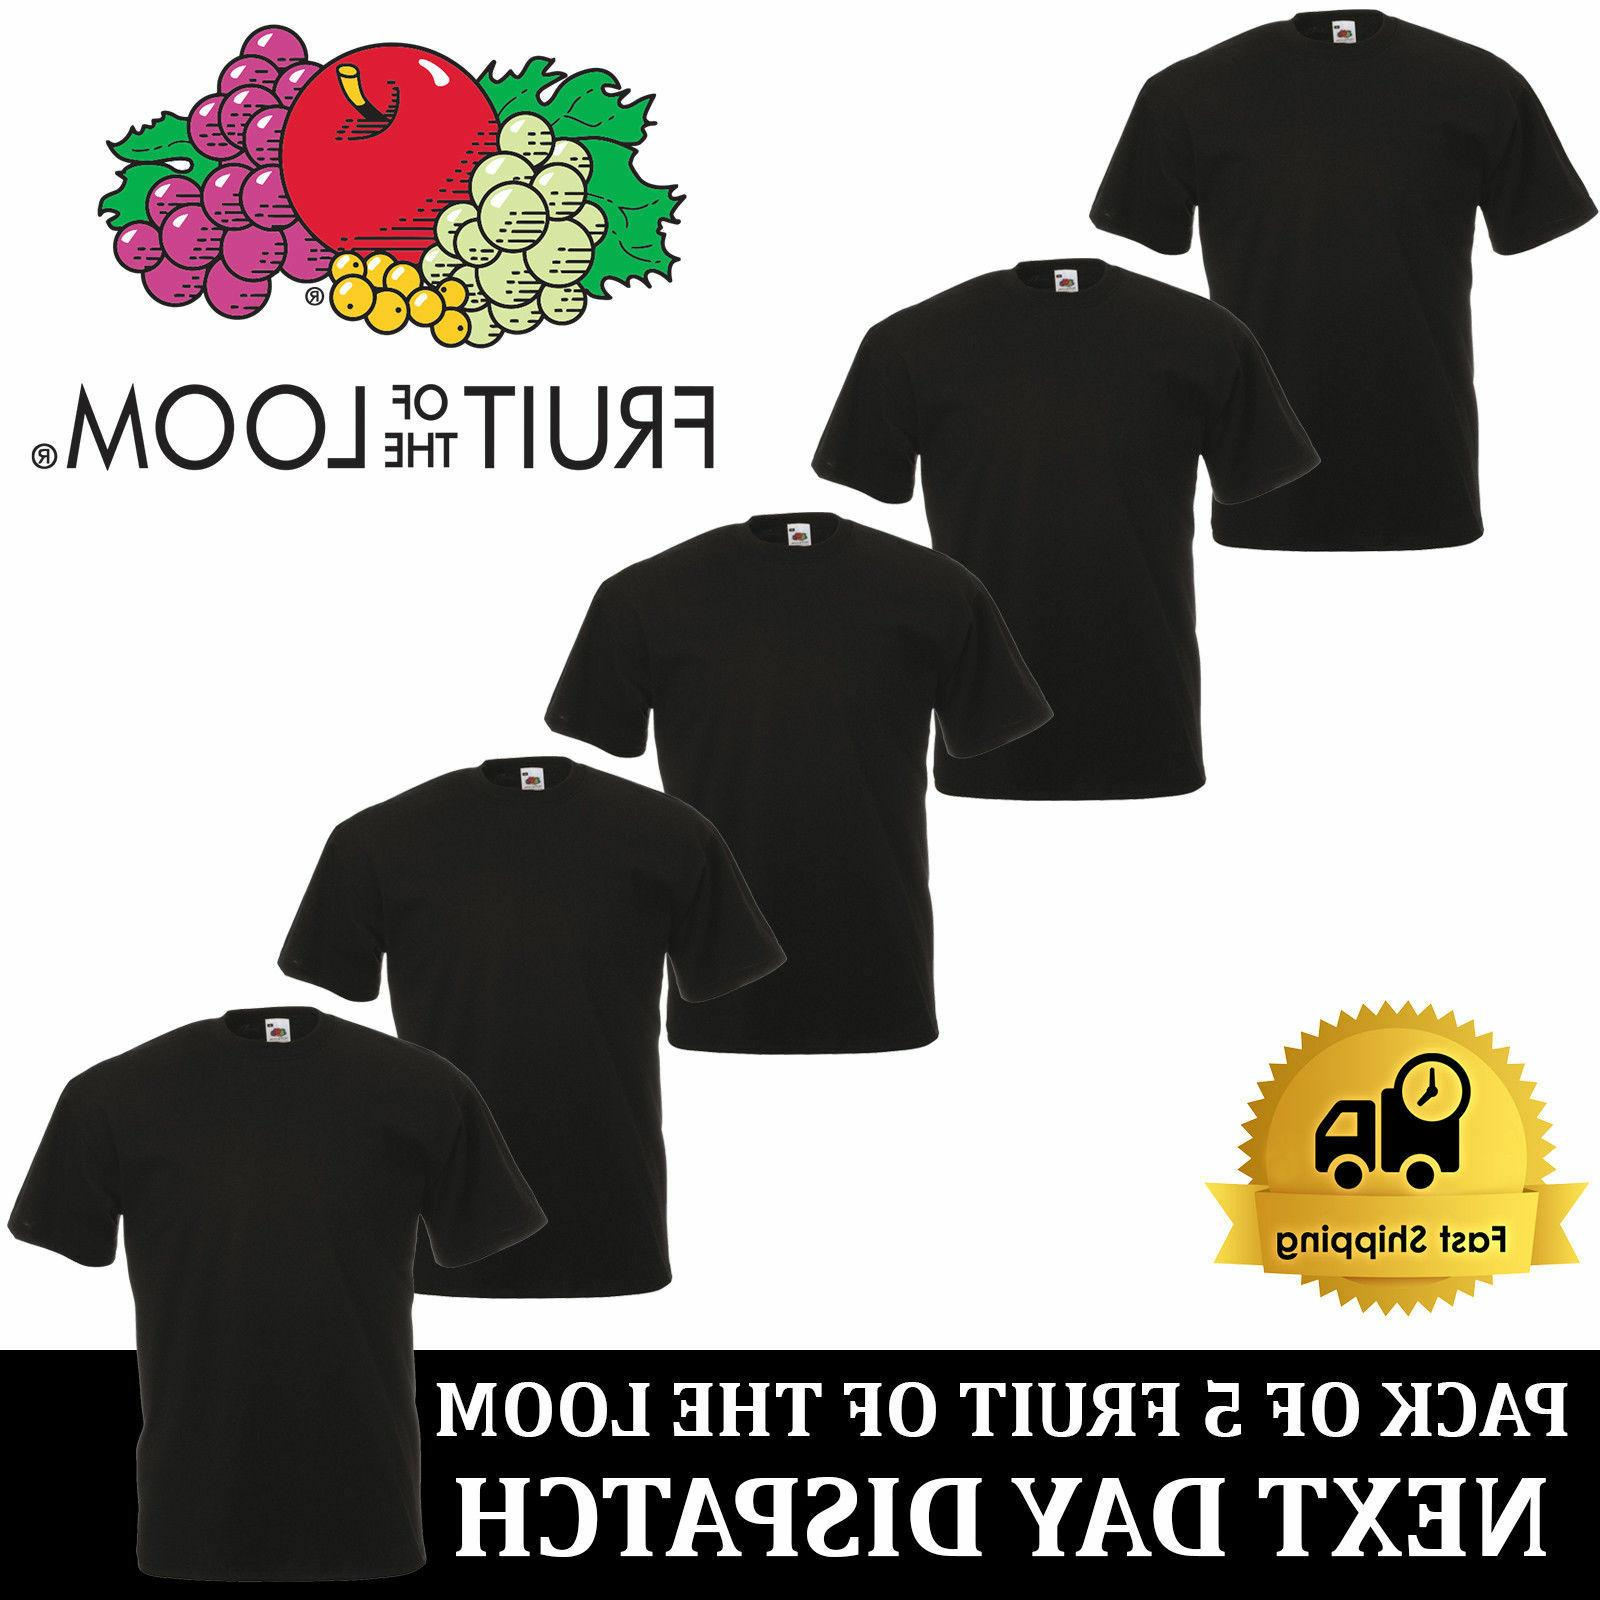 5 PACK OF LOOM Plain Mens Black T S XL T-Shirt Tee